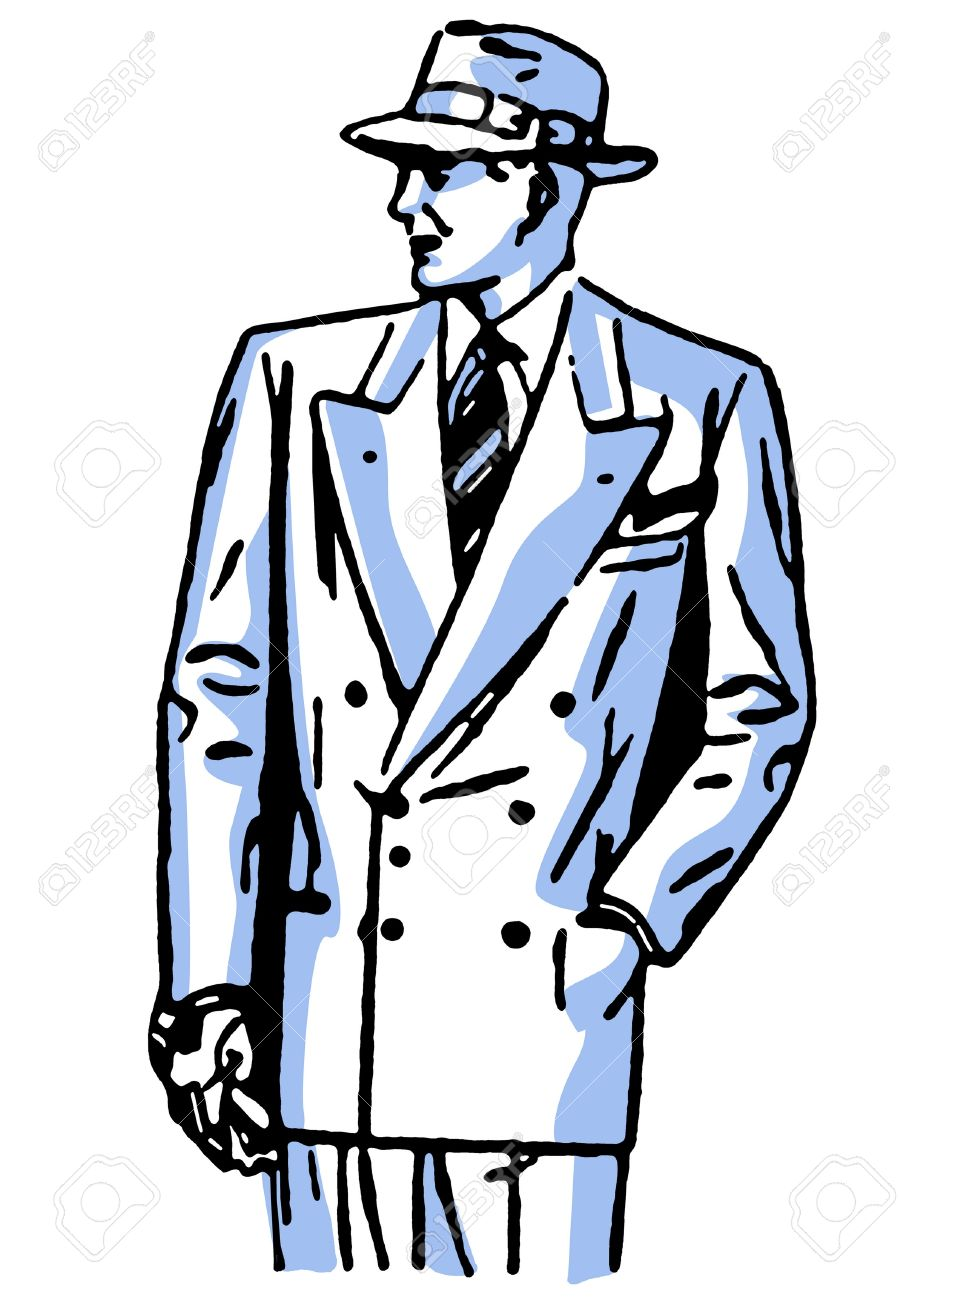 613f5299184 A graphical drawing of a detective character Stock Photo - 14917905